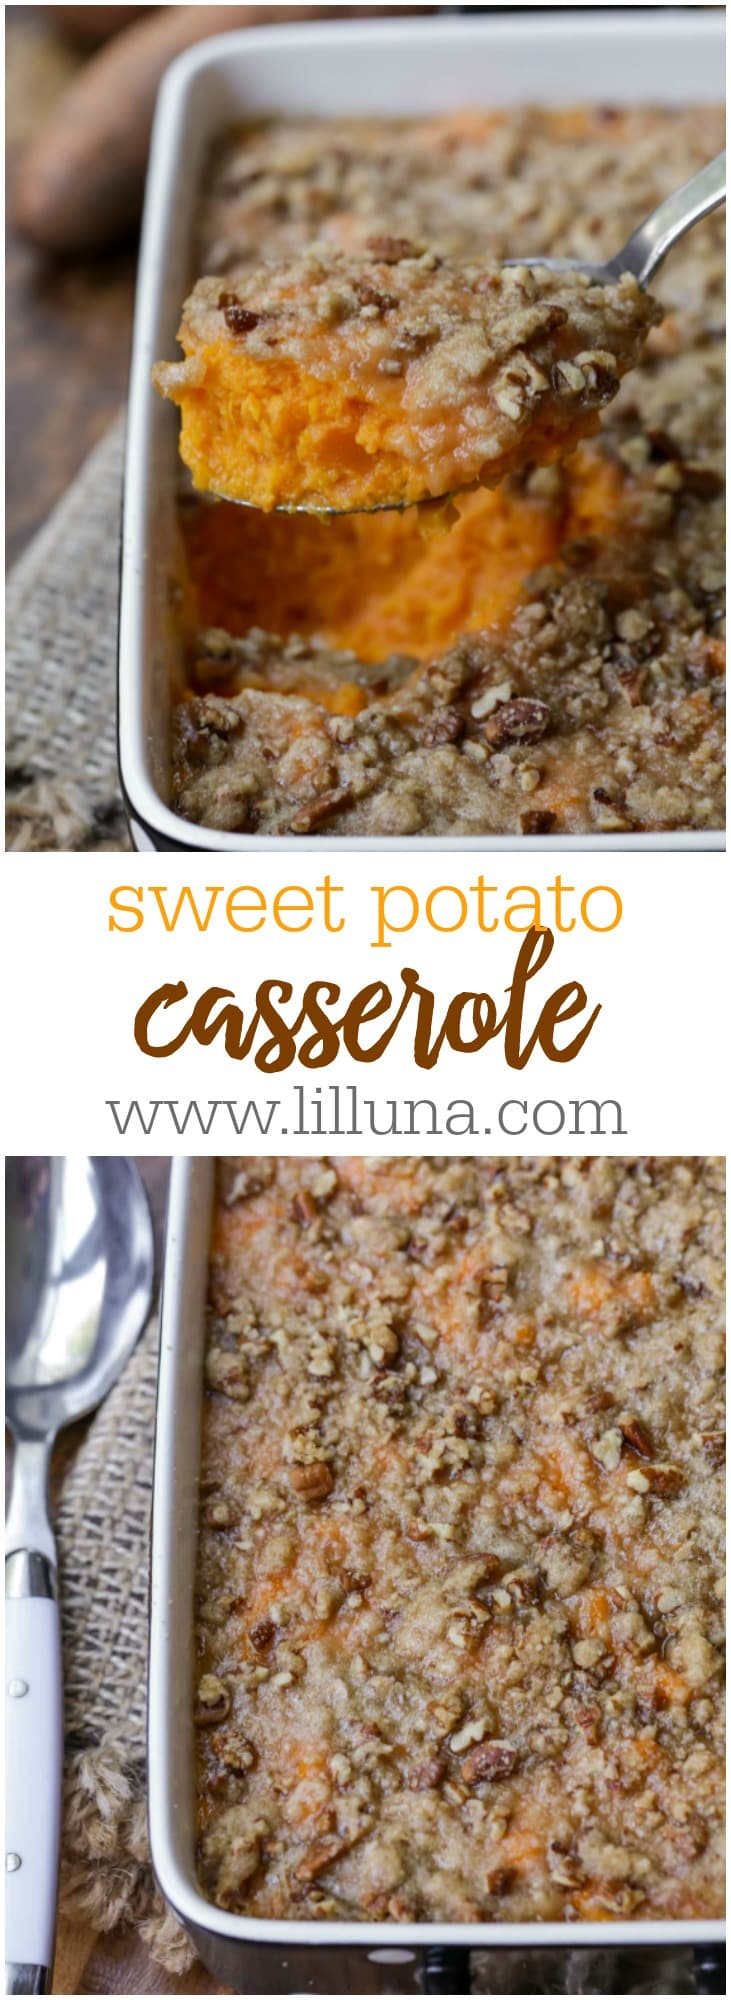 Delicious Sweet Potato Casserole - creamy sweet potatoes topped with a butter-y, brown sugar and pecan topping!